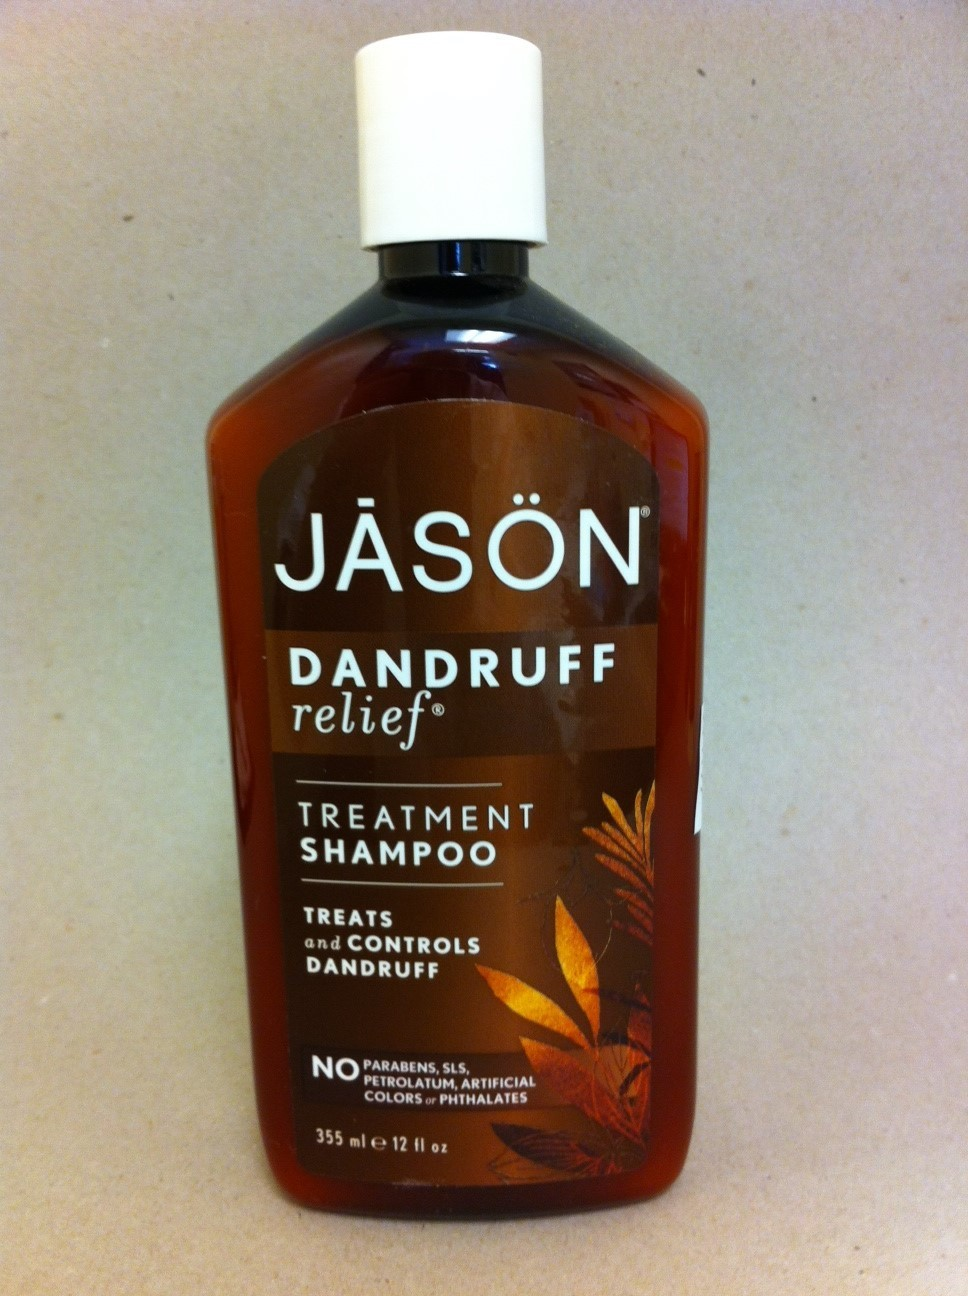 Jason Dandruff Relief Treatment Shampoo